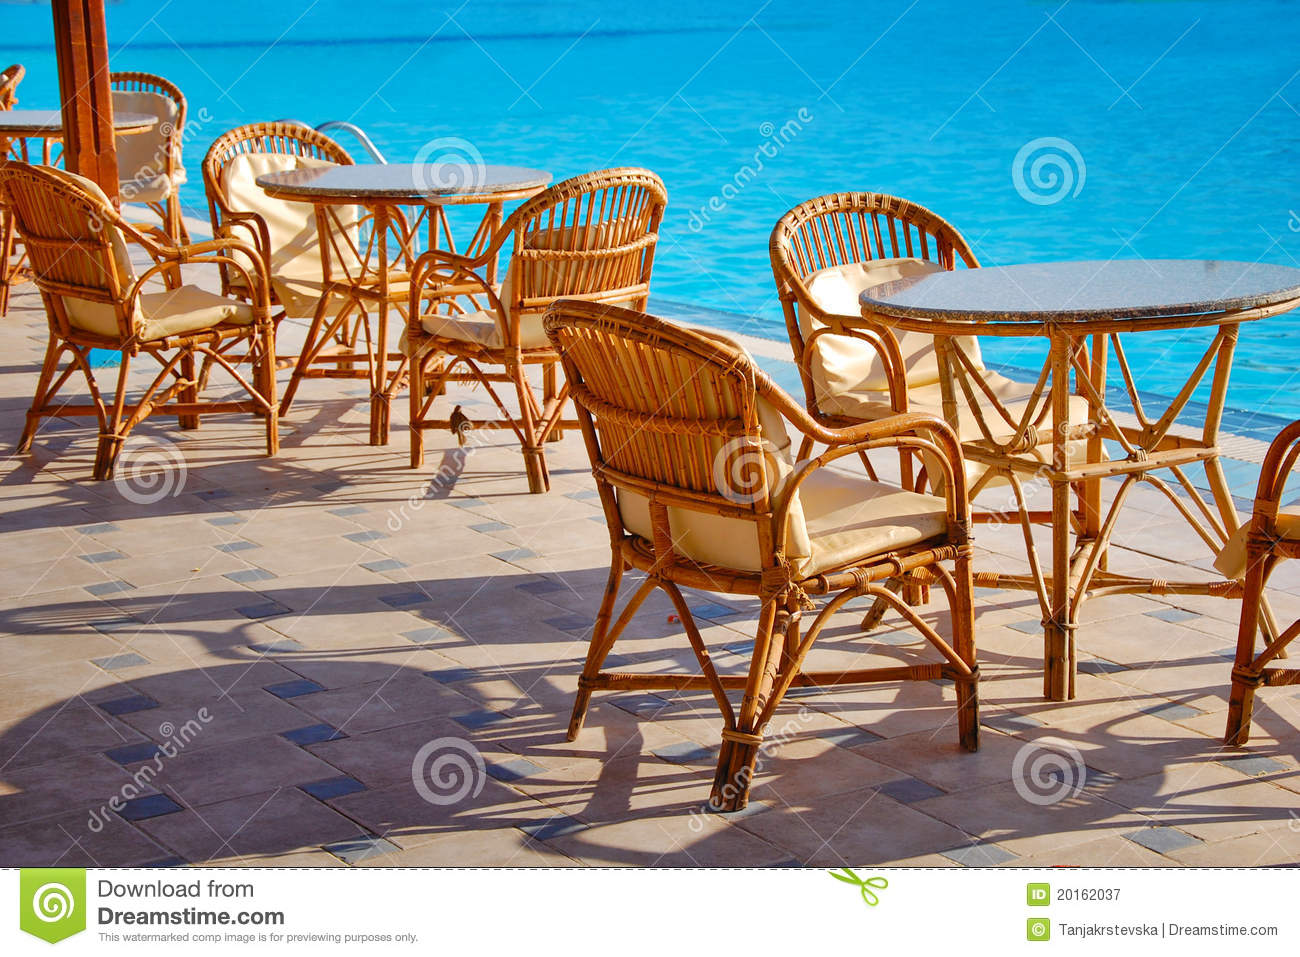 Table and chairs by the pool royalty free stock for Poolside table and chairs